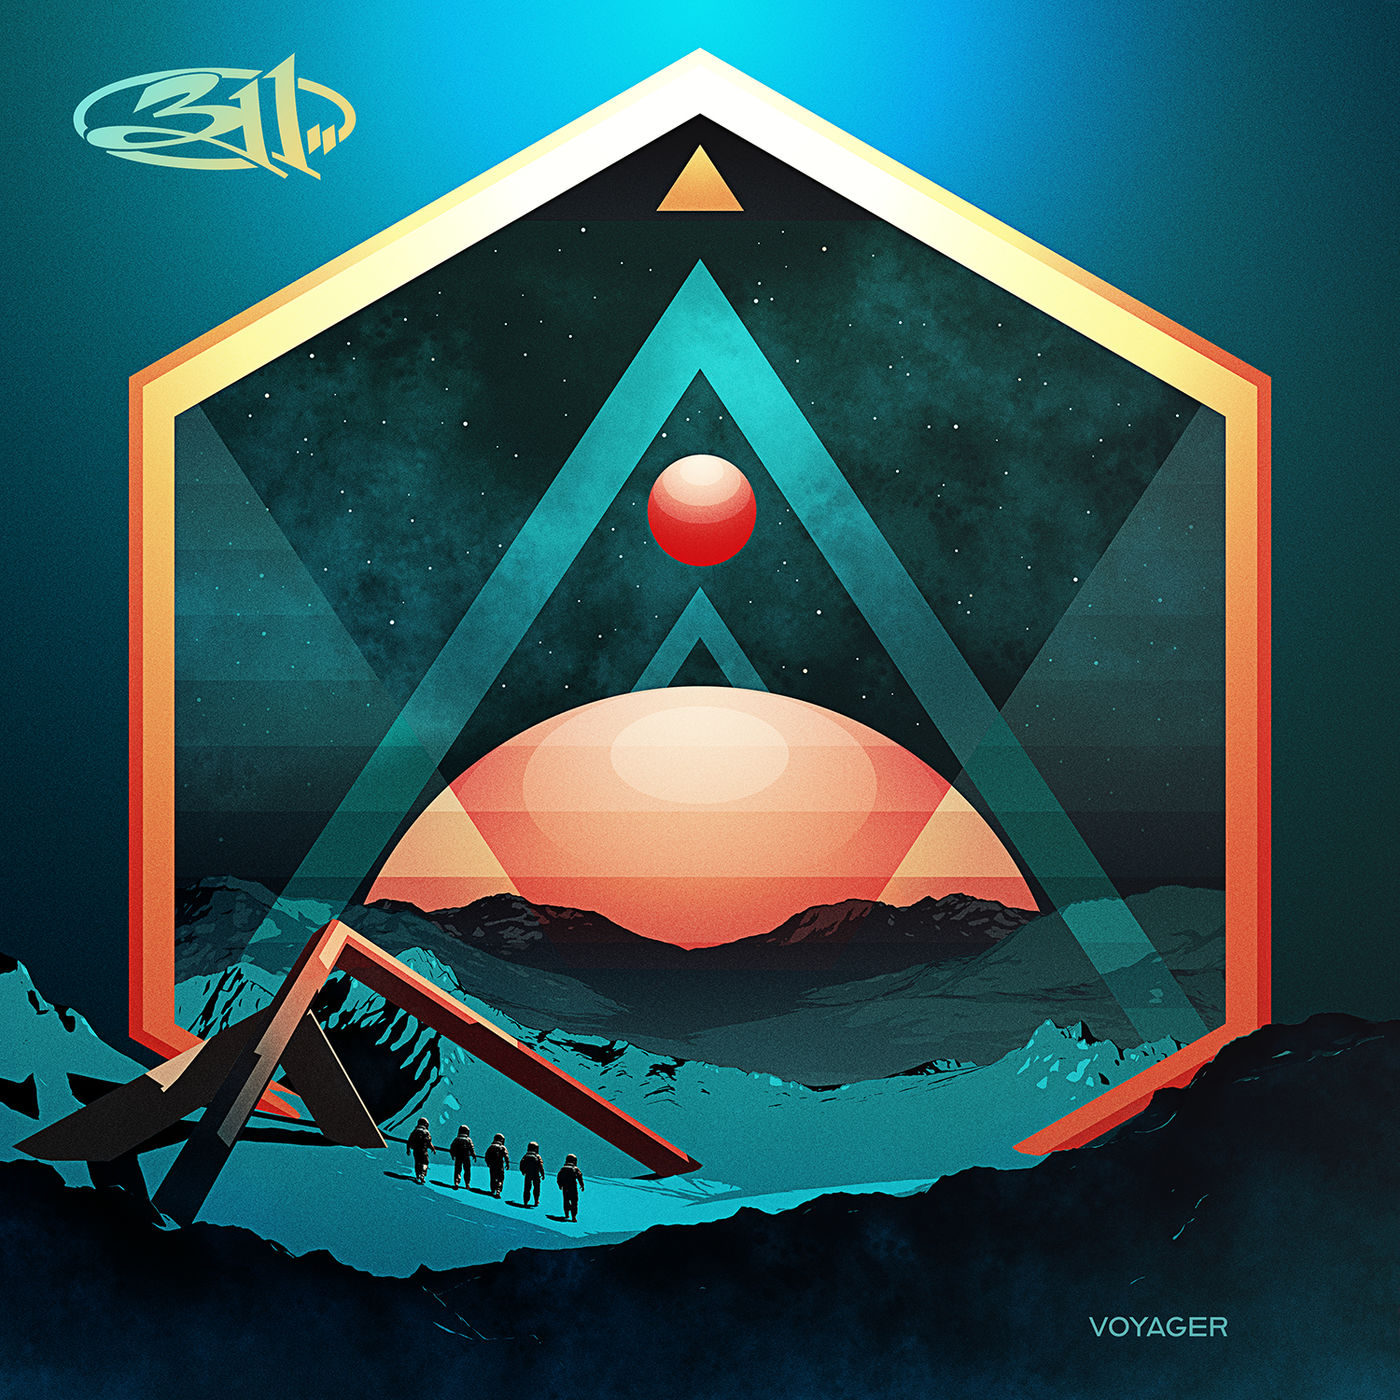 311 - Voyager (2019)